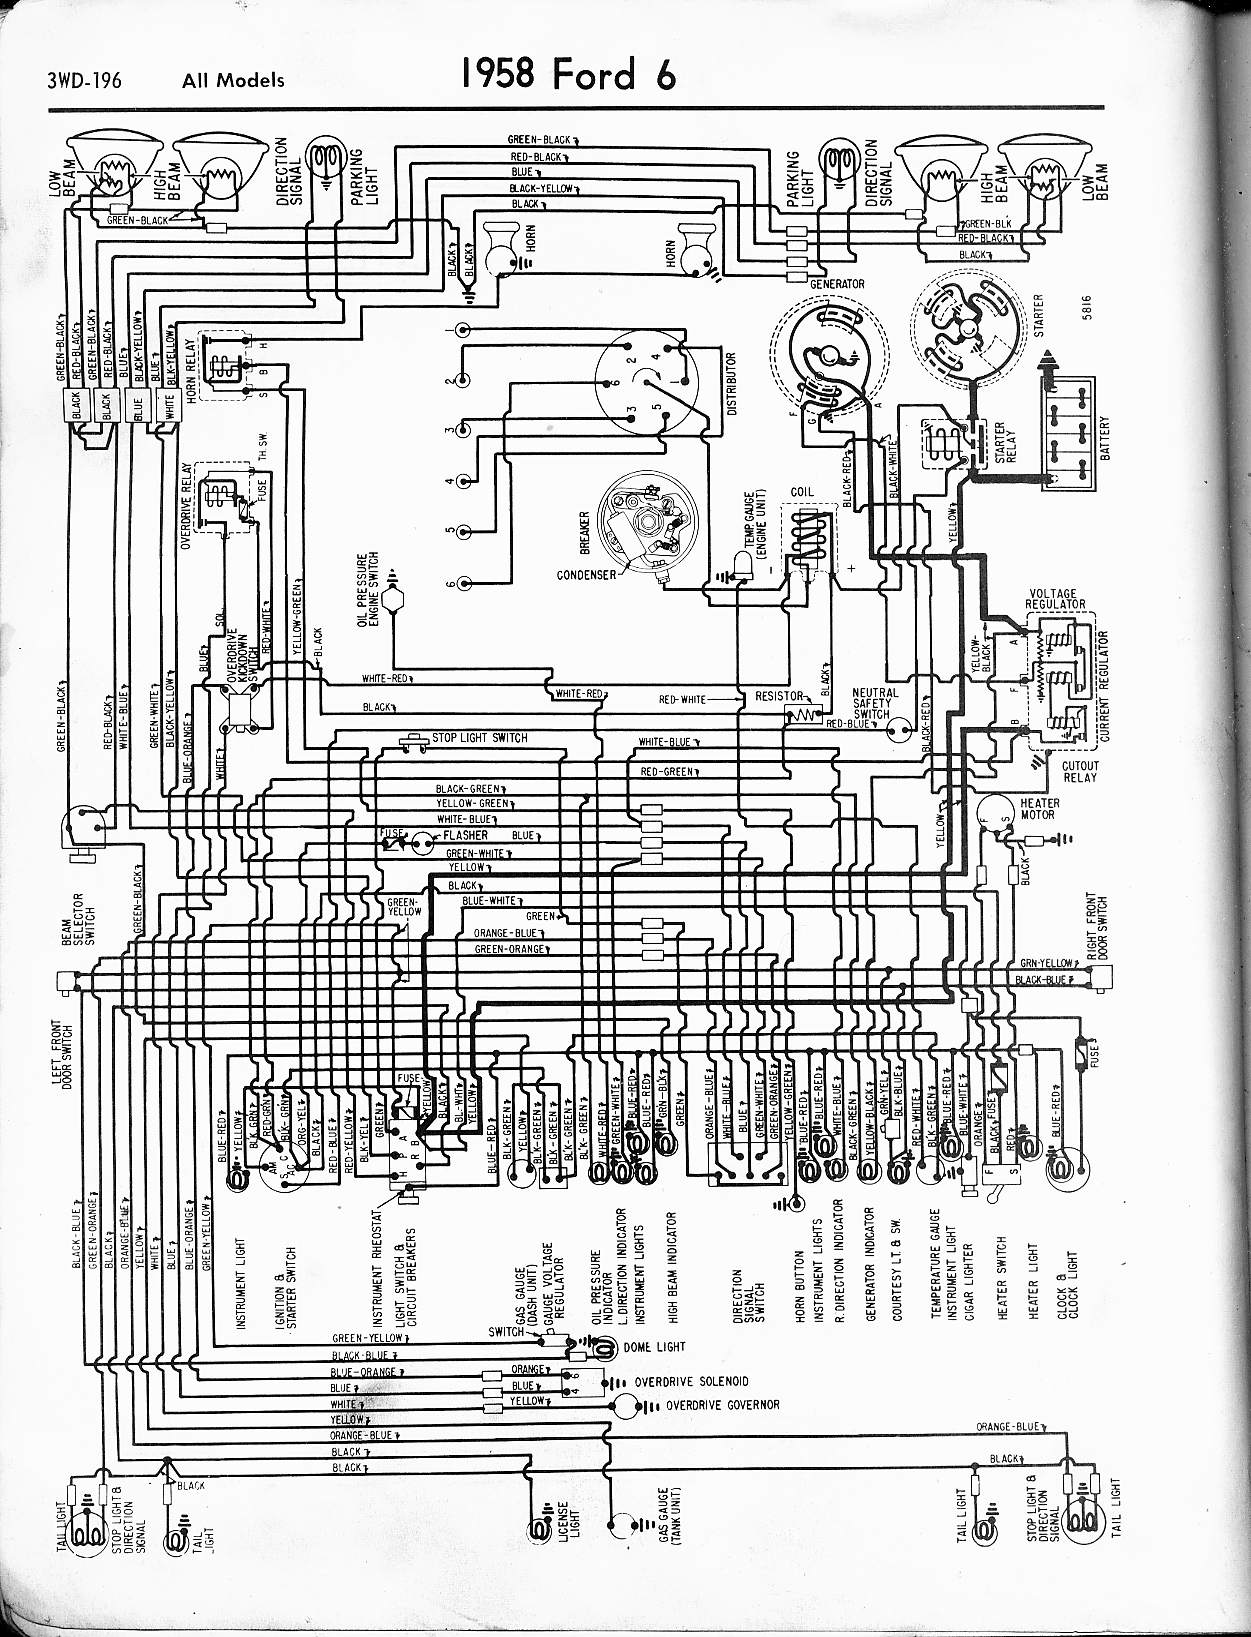 wrg 4699] 1958 ford wiring diagram1958 ford wiring diagram